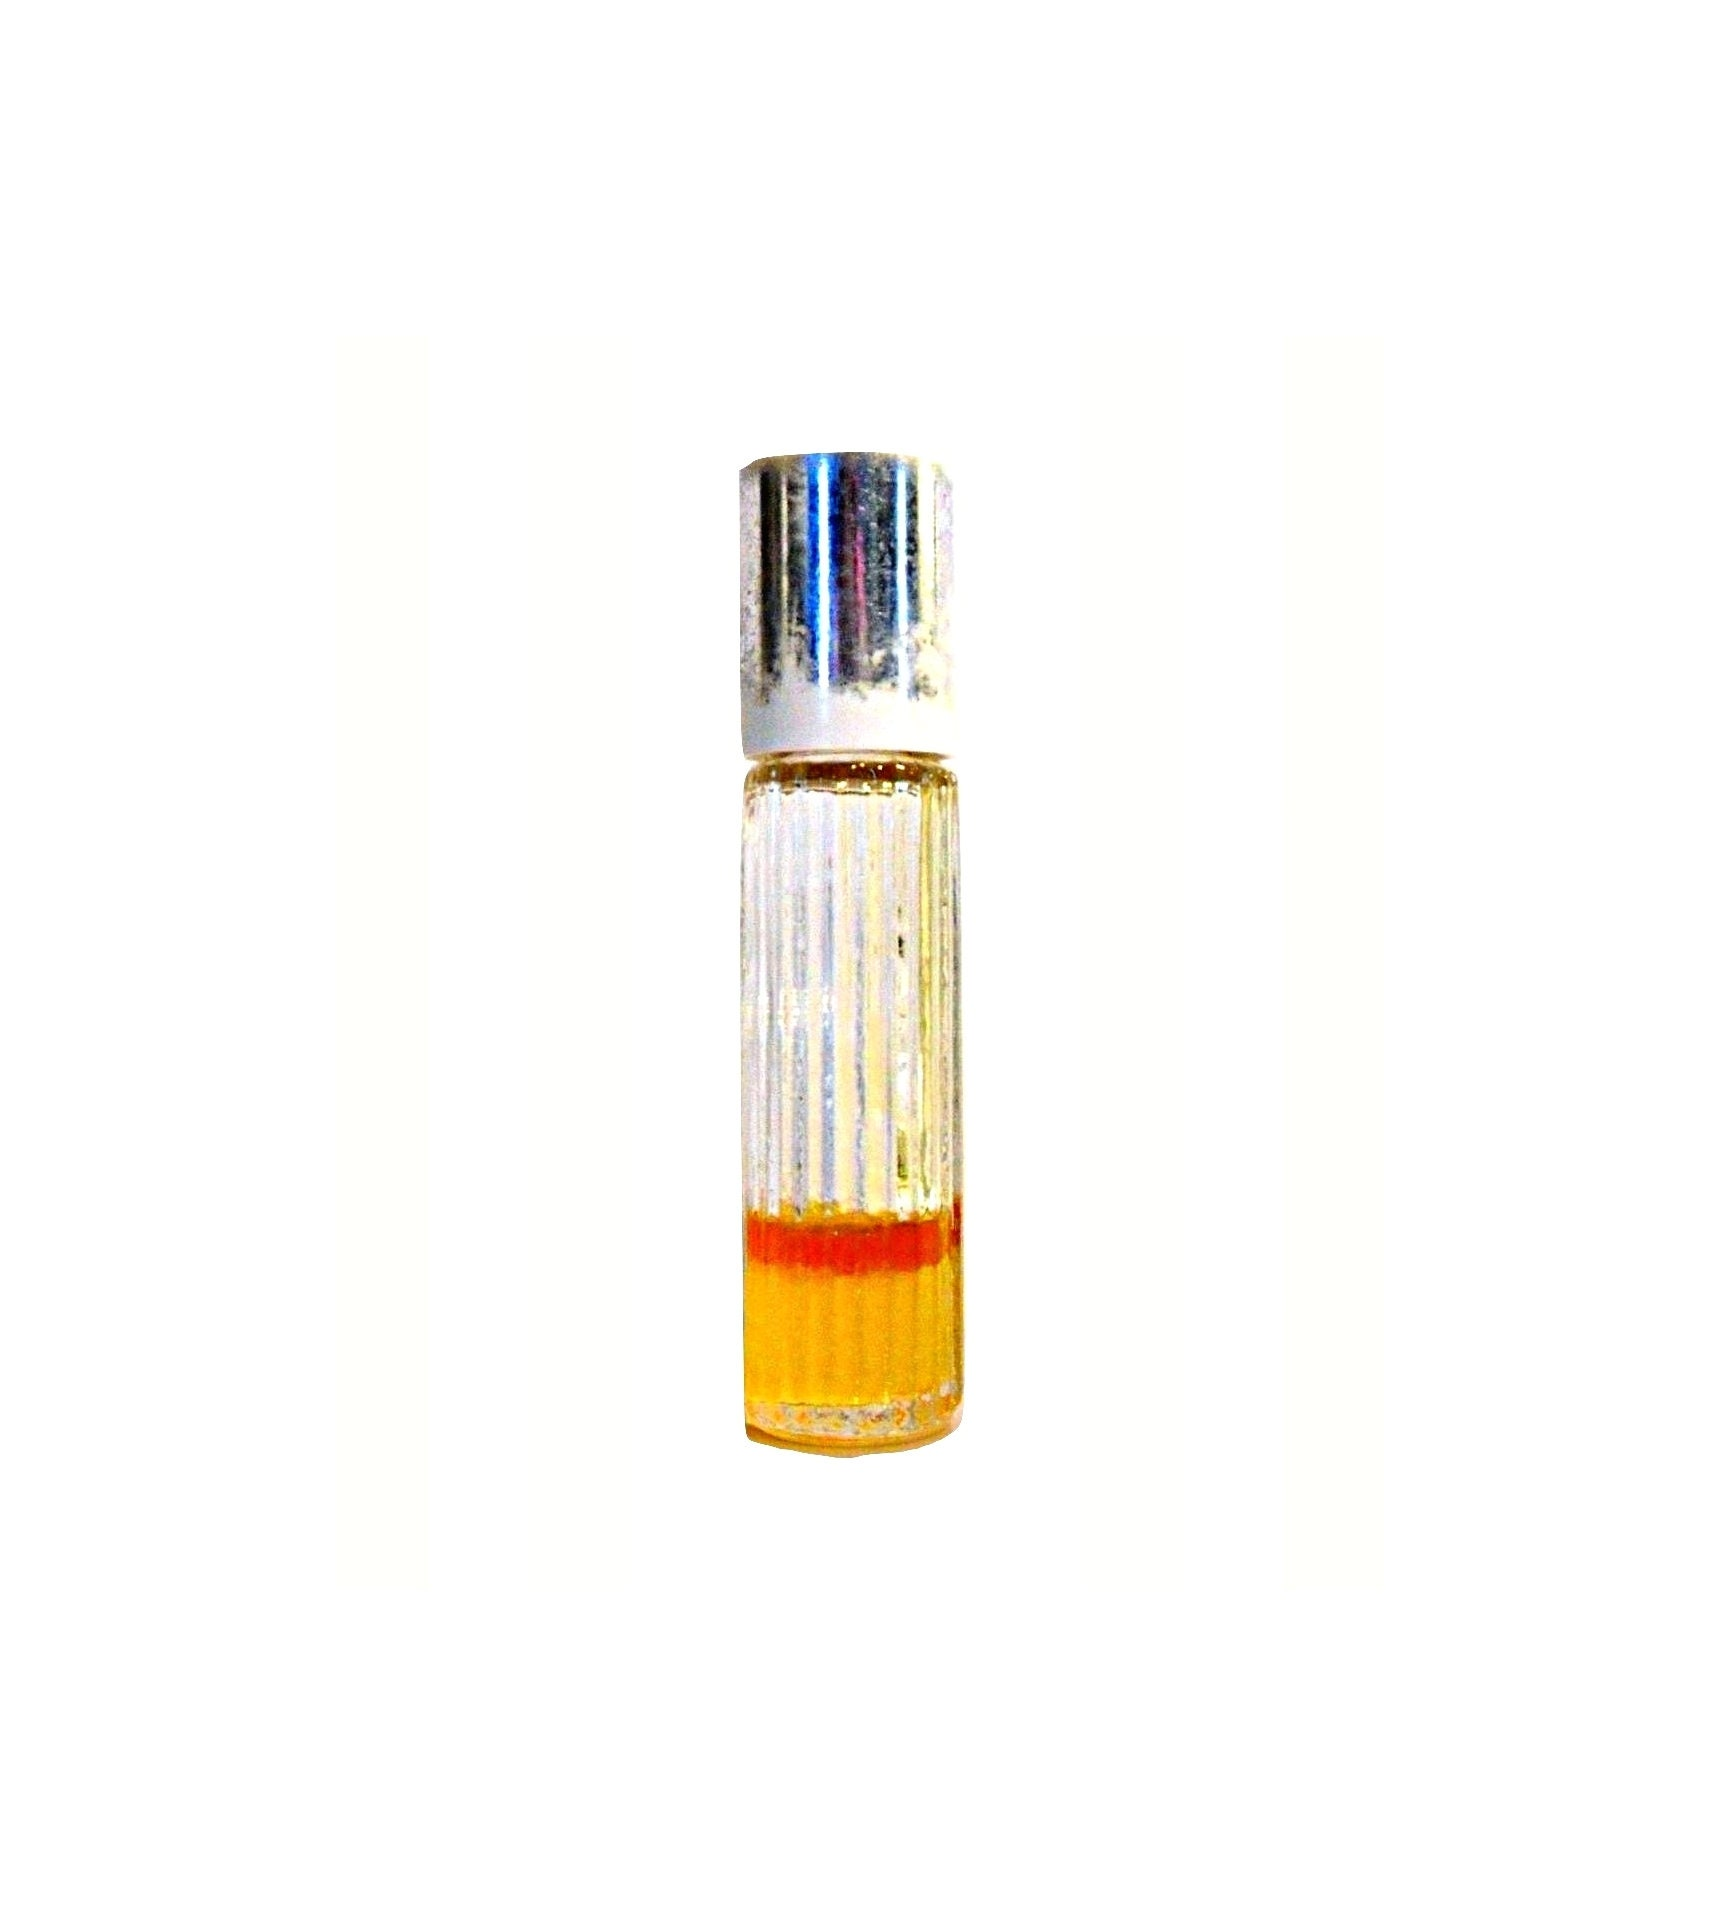 Clearance Vintage 1960s Occur By Avon 033 Perfume Rollette